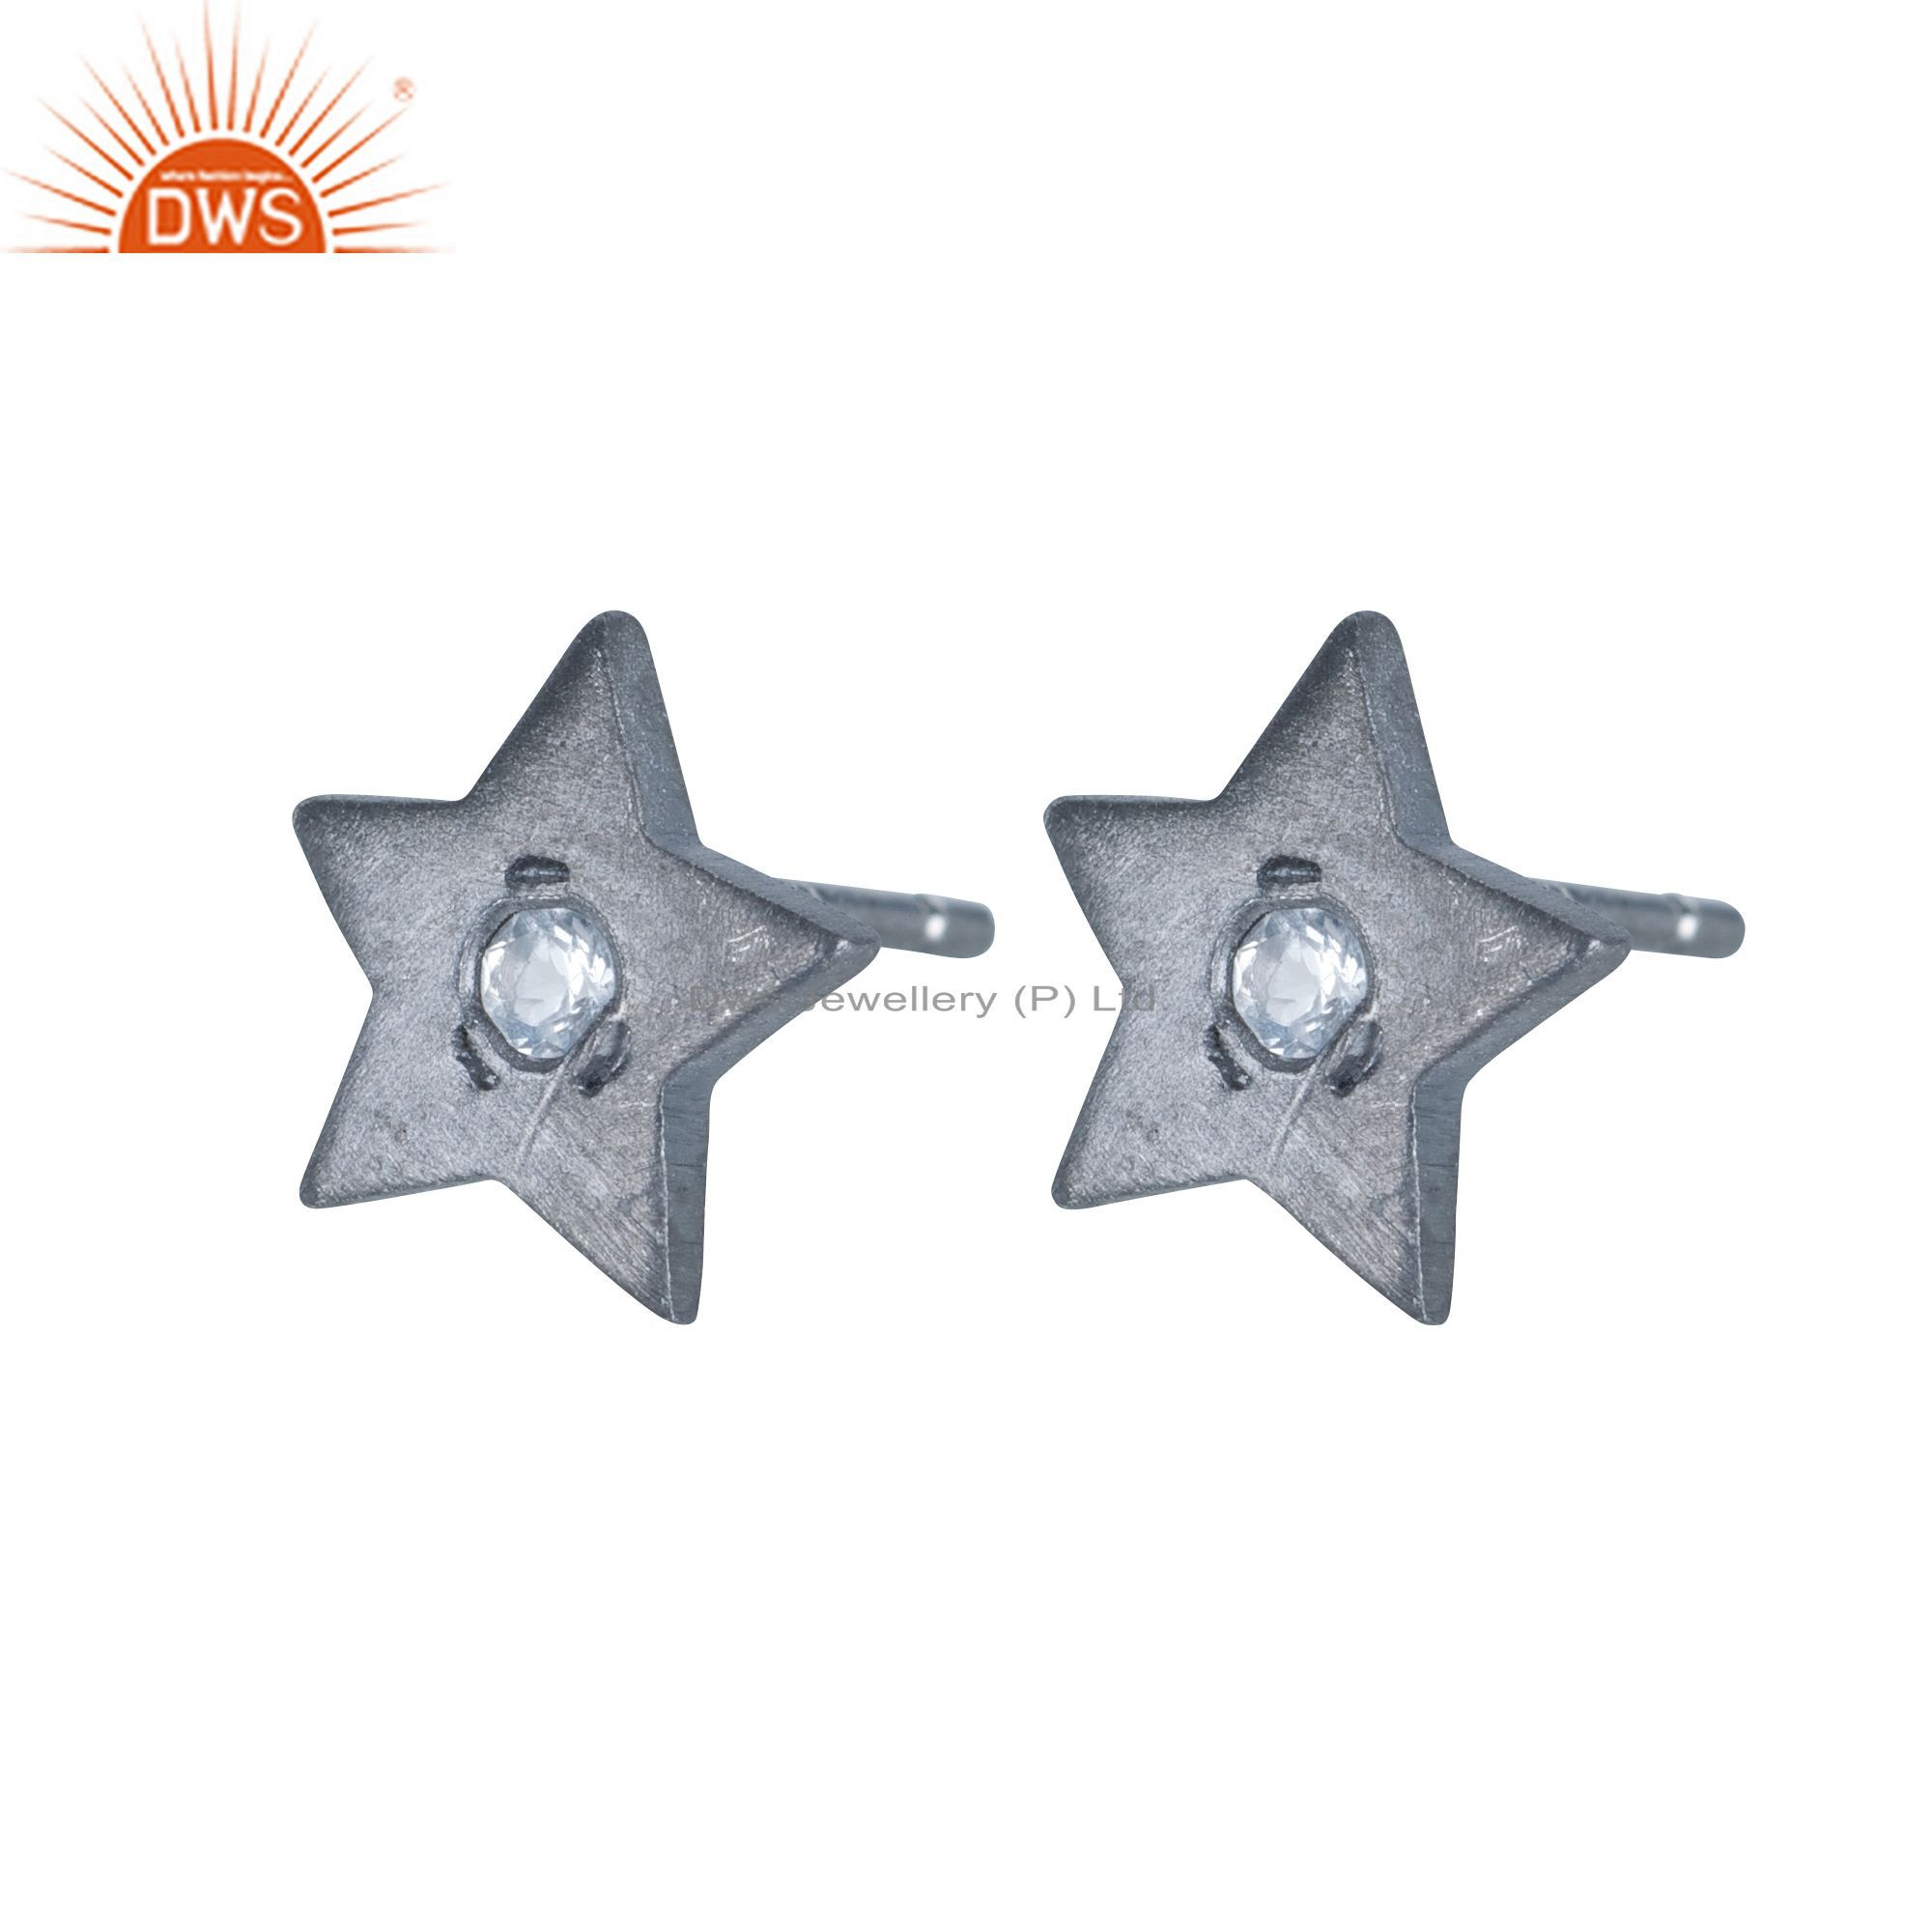 Black Rhodium Plated Sterling Silver Star Design Stud Earrings With White Topaz